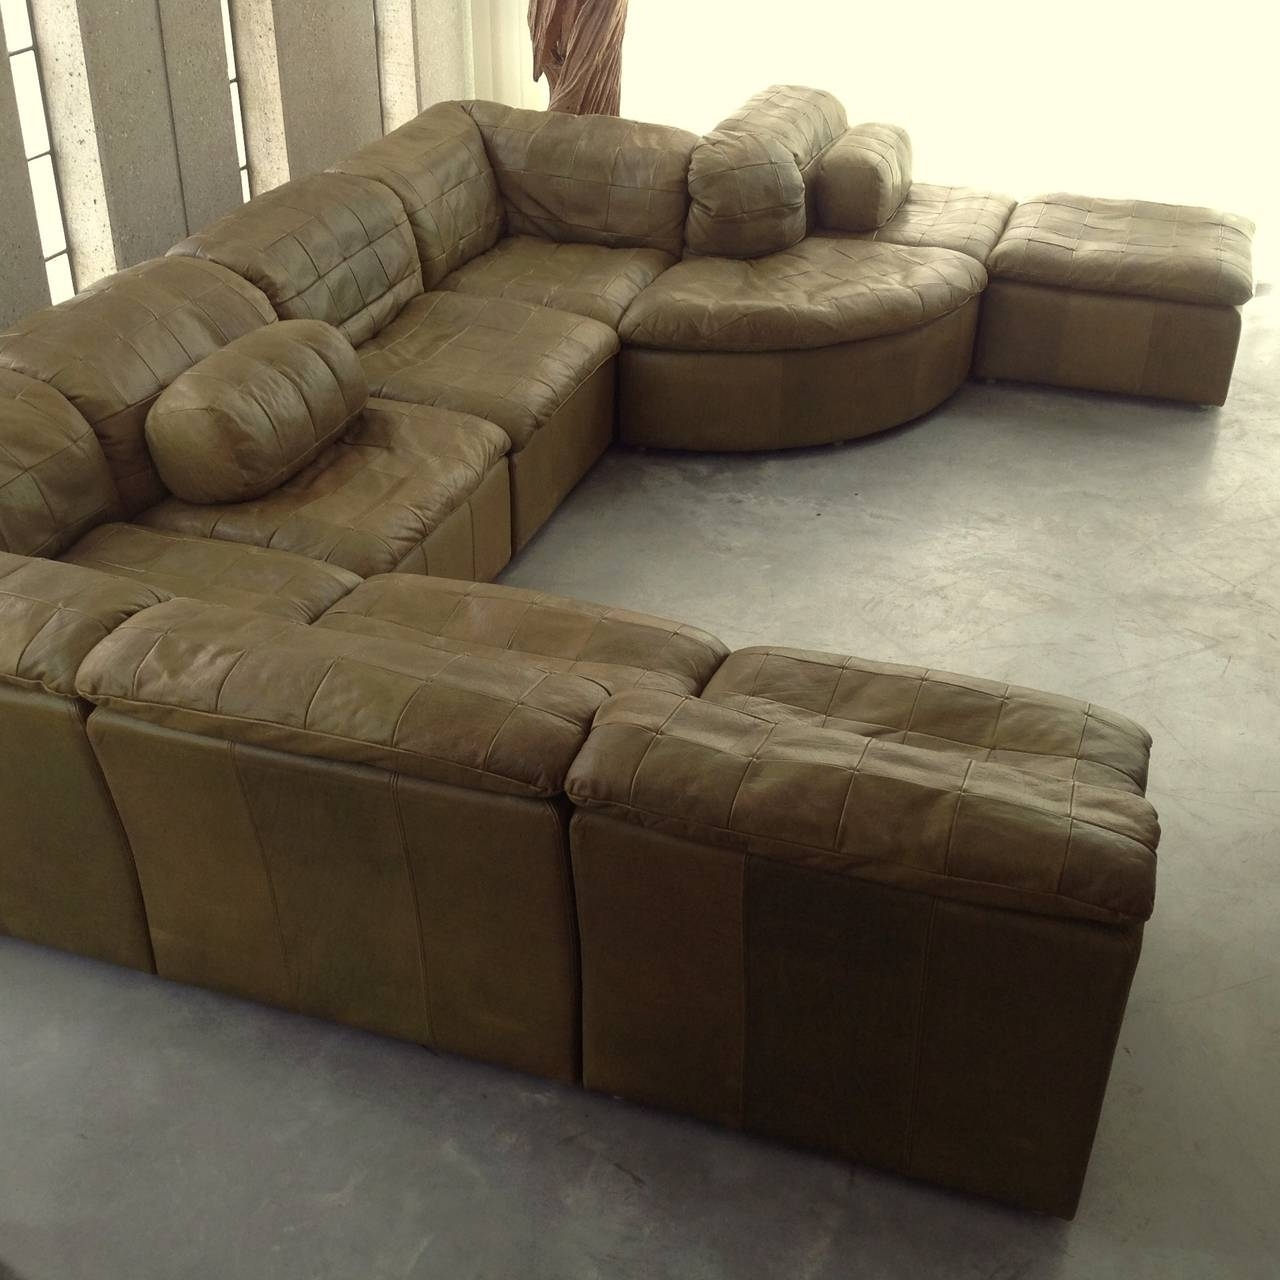 Tucson Sectional Sofas Intended For Current Trend Olive Green Sectional Sofa 57 In Sectional Sofas Tucson With (View 13 of 20)